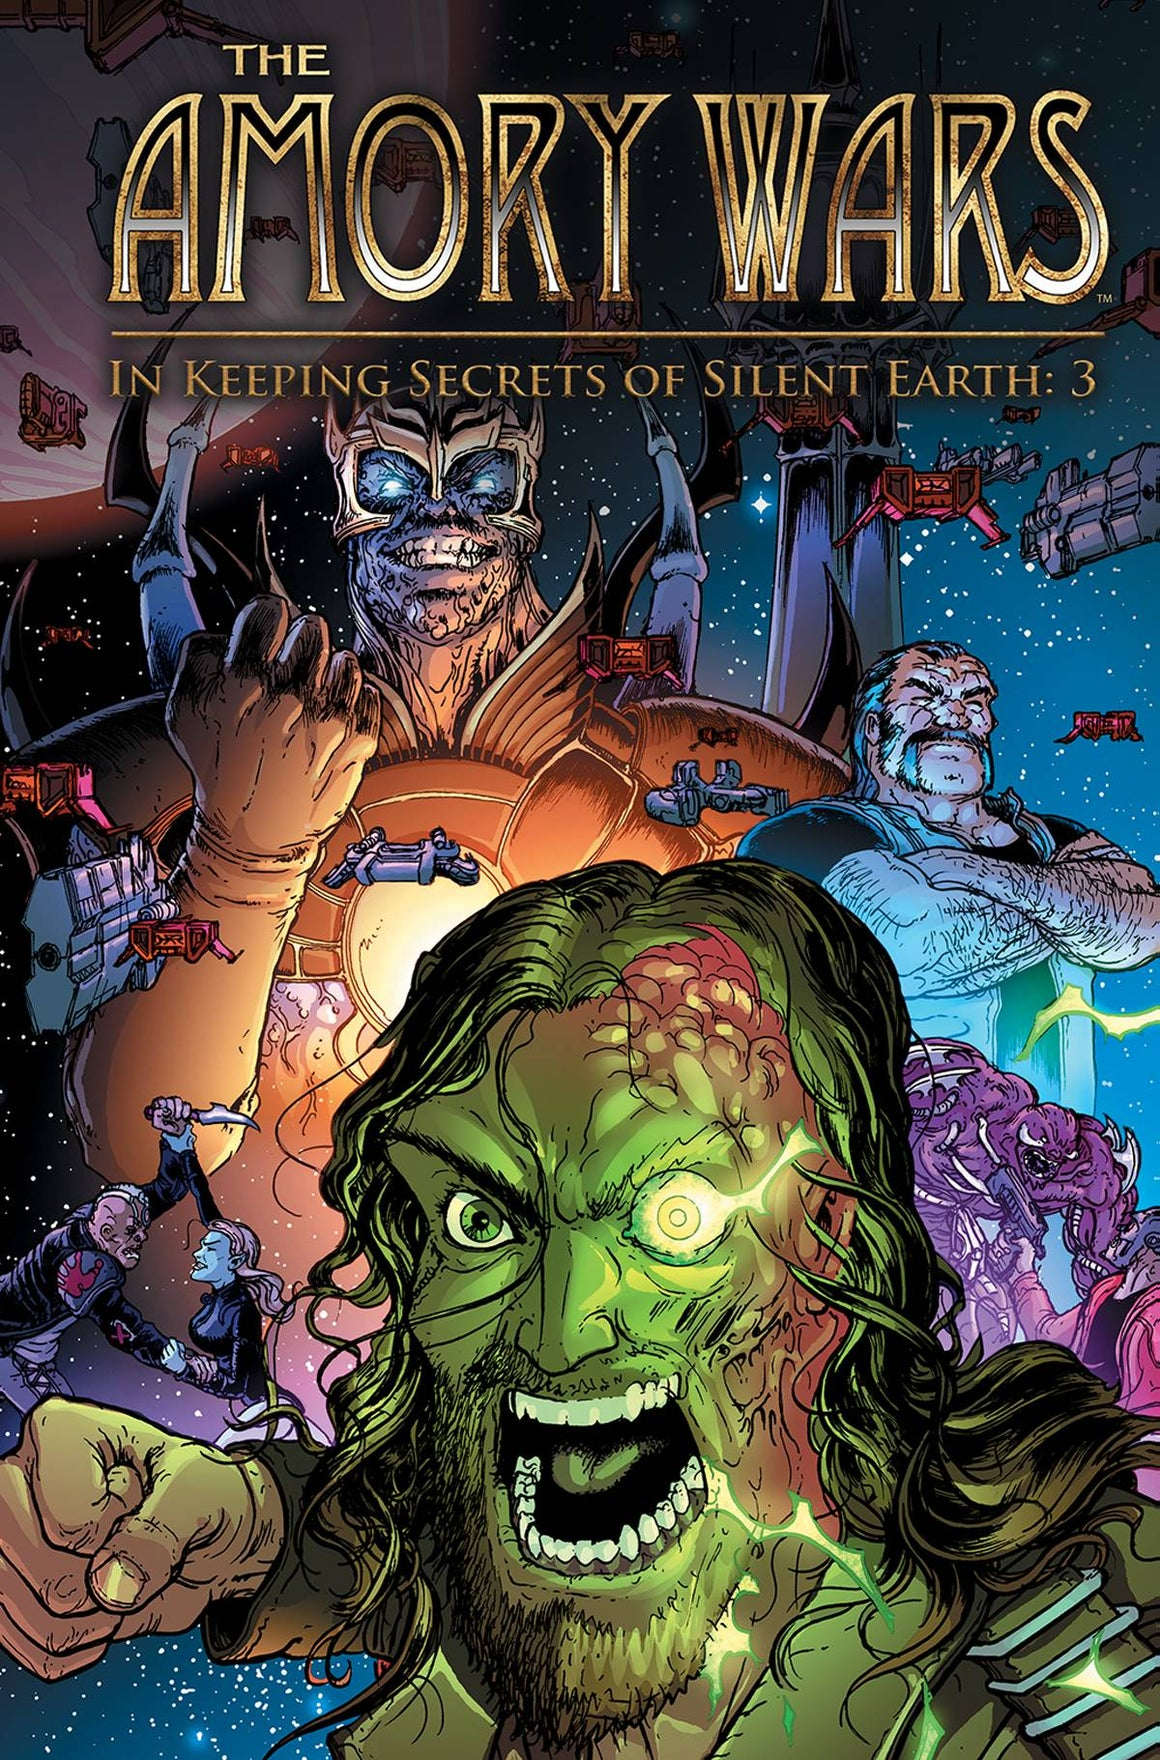 AMORY WARS HC KEEPING SECRETS OF SILENT EARTH 3